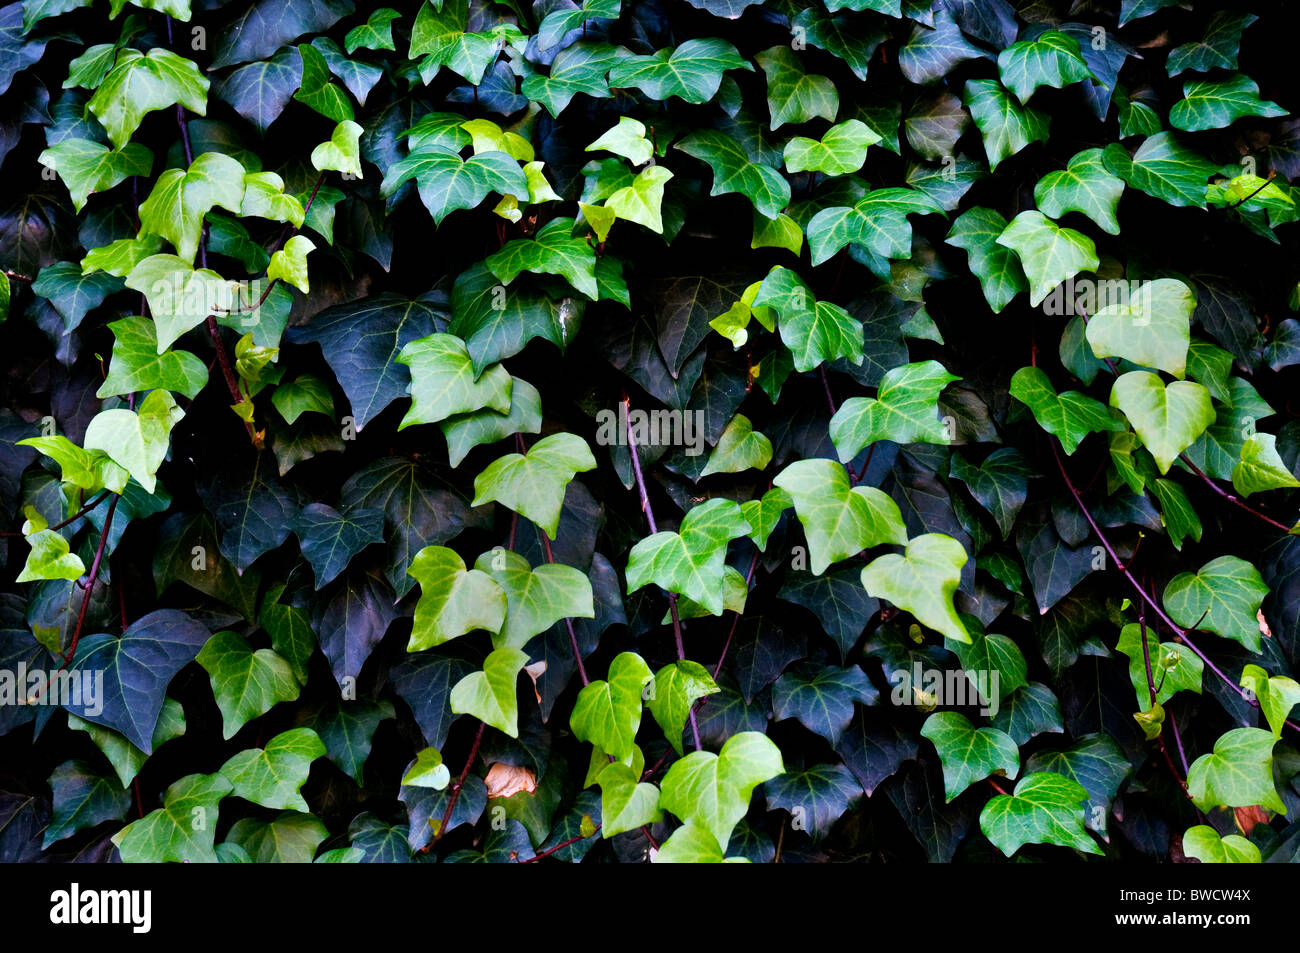 Close up shots of a common ivy - Stock Image